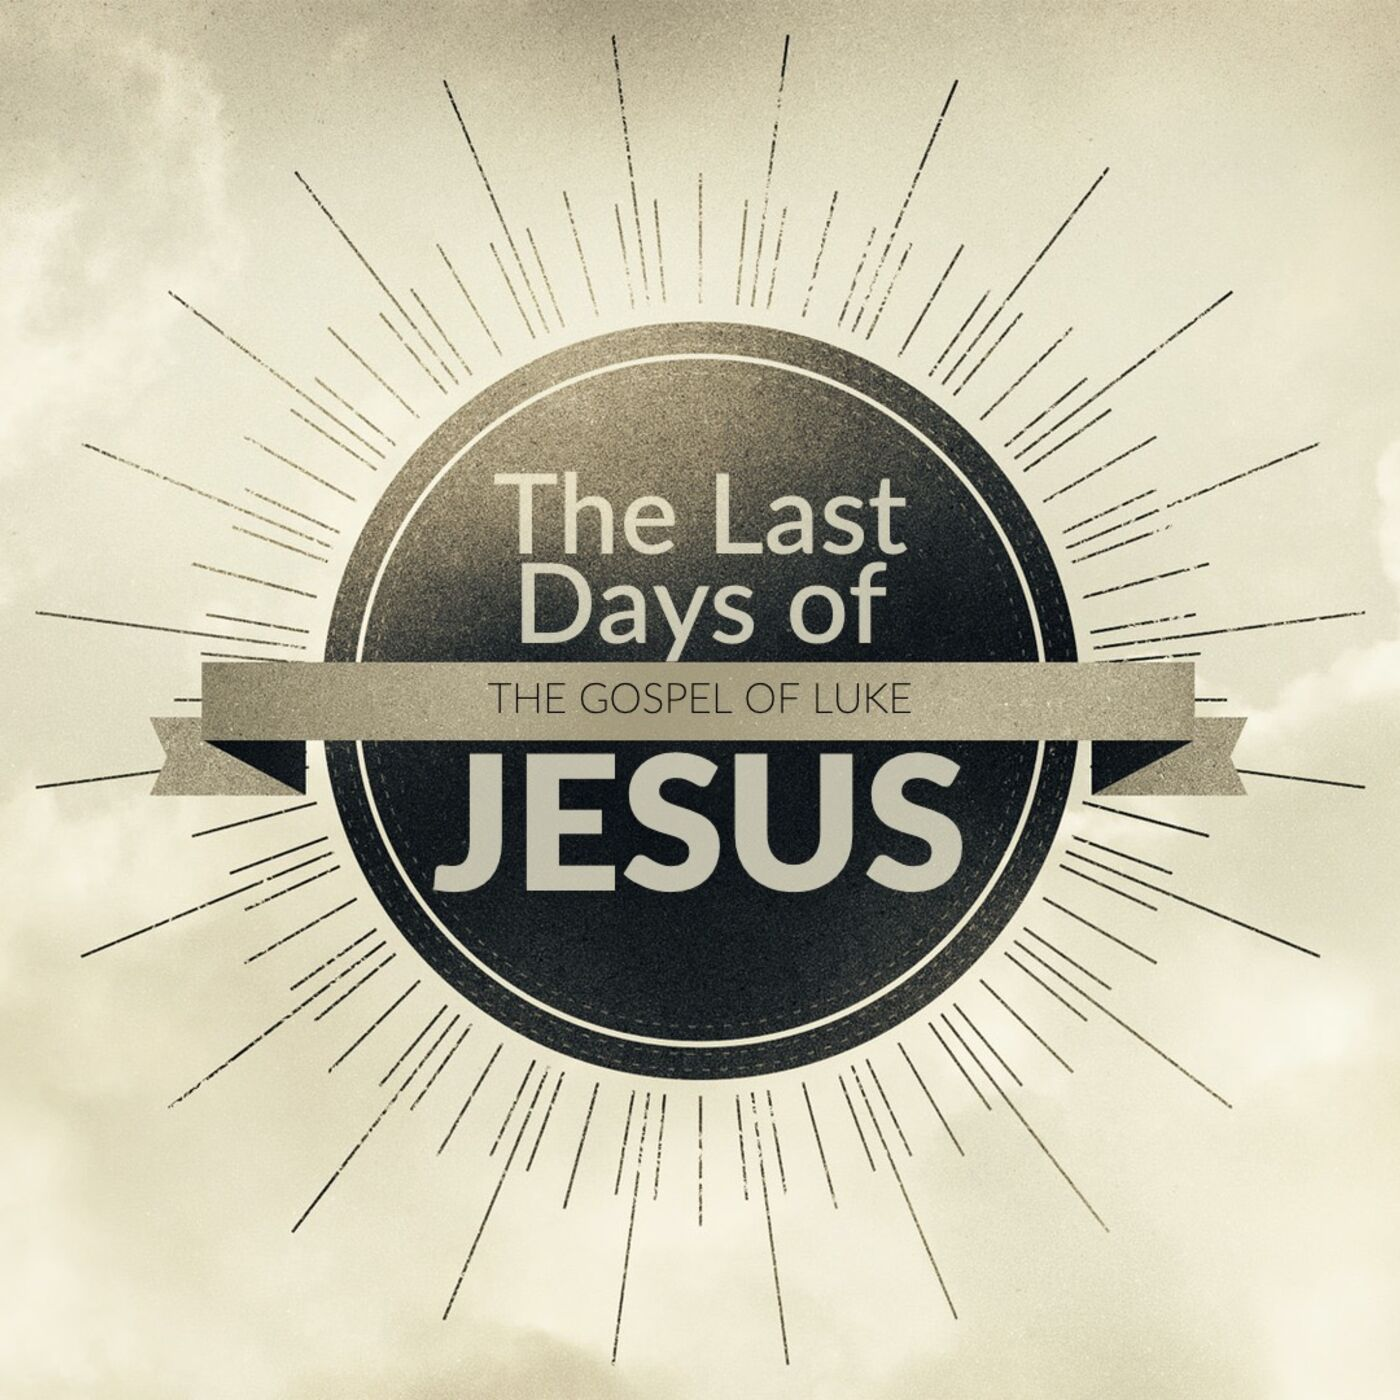 The Last Days of Jesus: God and Money (Luke 16:1-14)